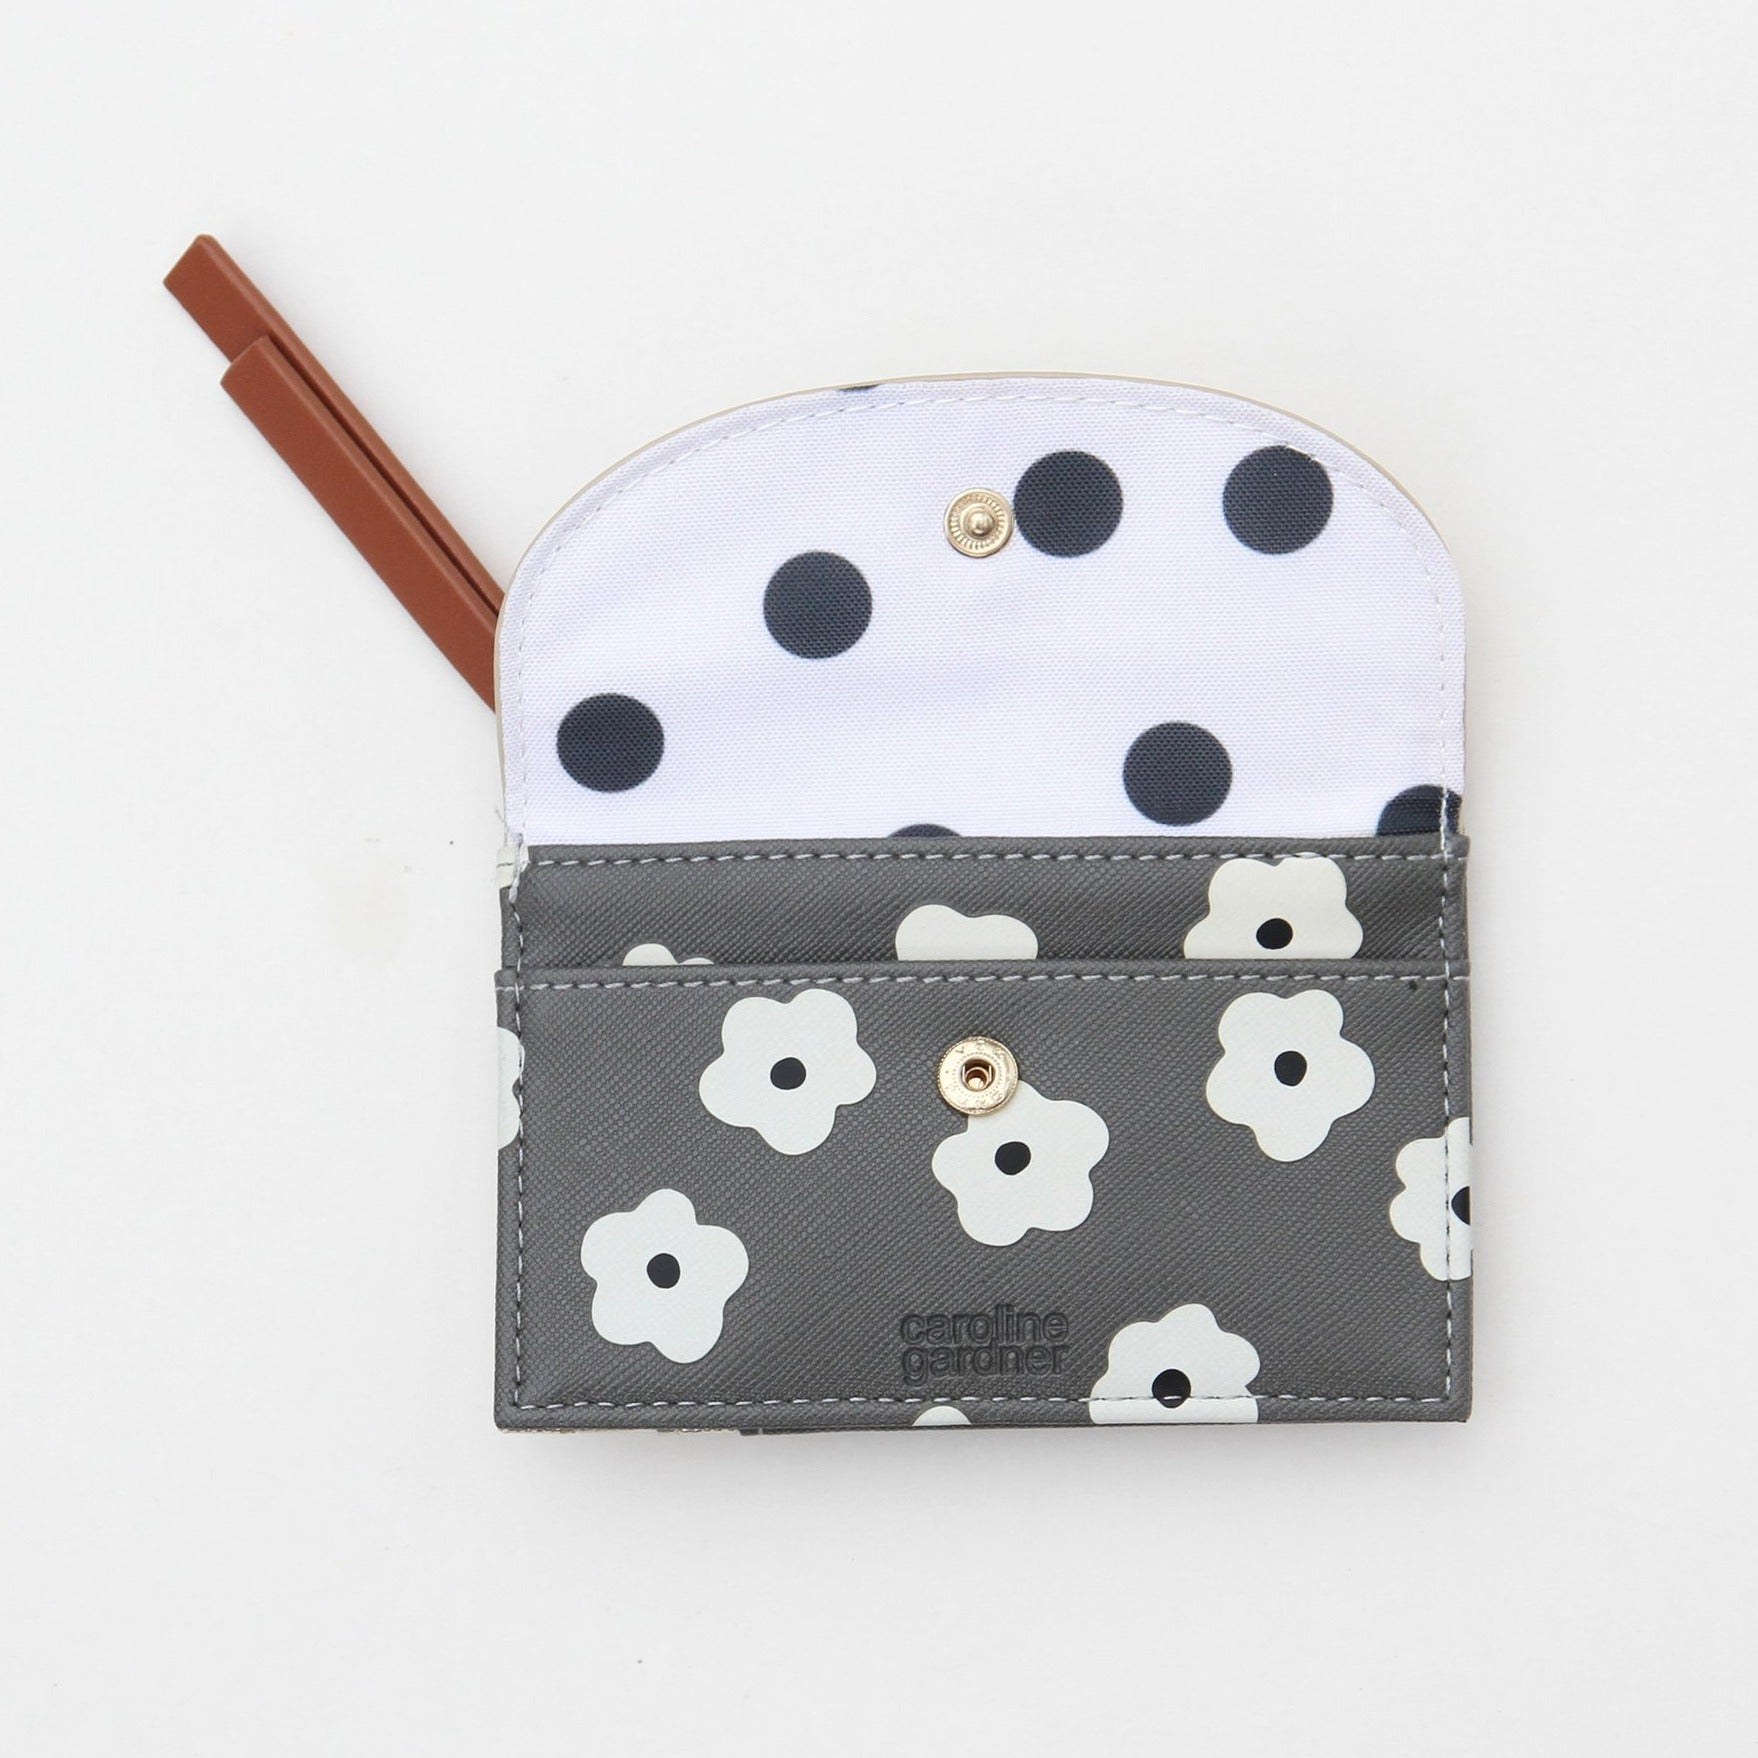 CARD HOLDER AND COIN PURSE